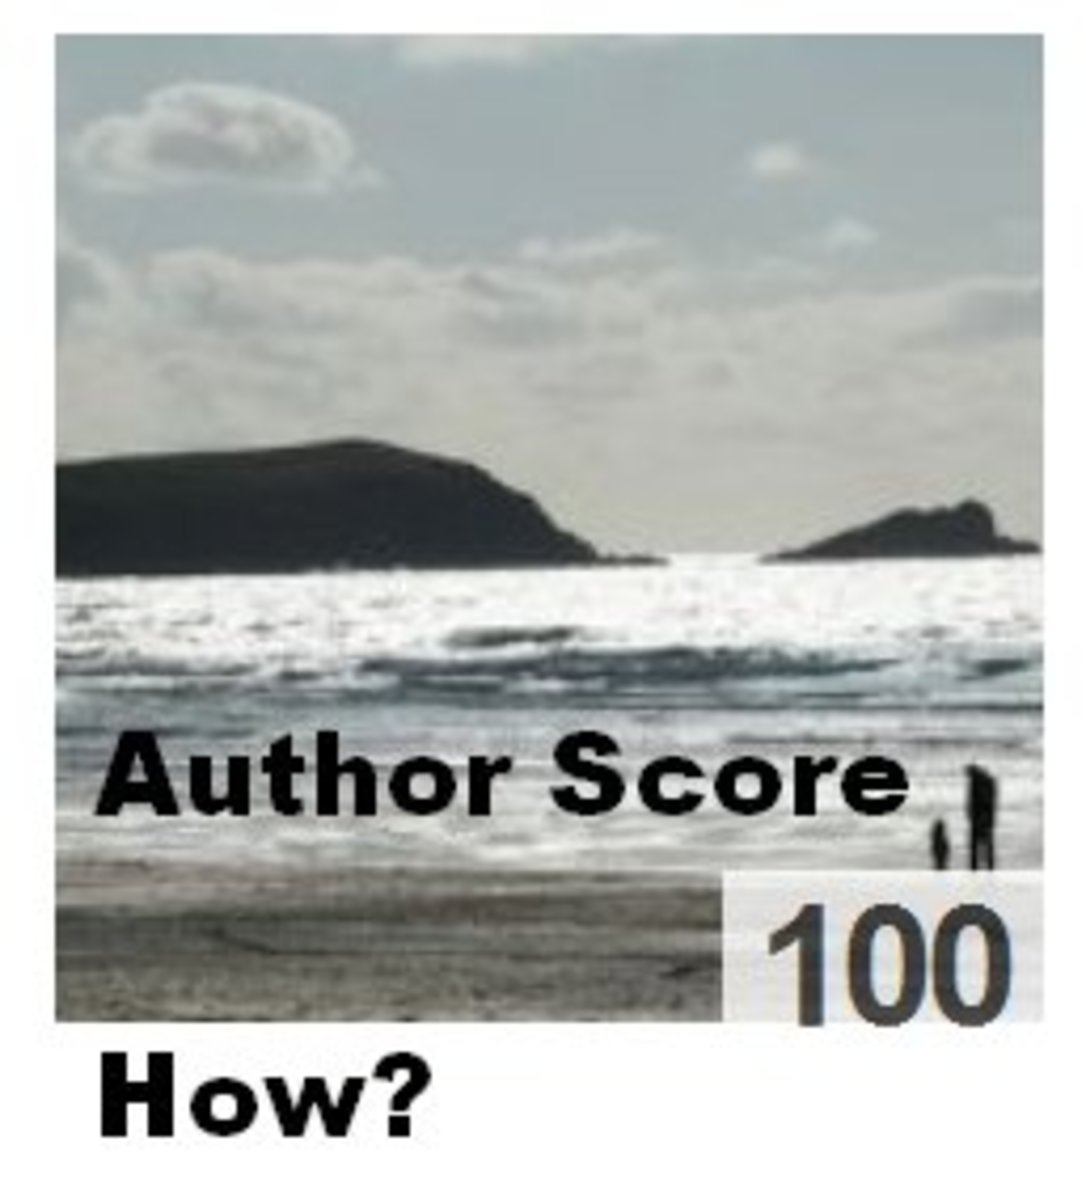 How To Increase Your Hub Author Score to 100 on Hubpages